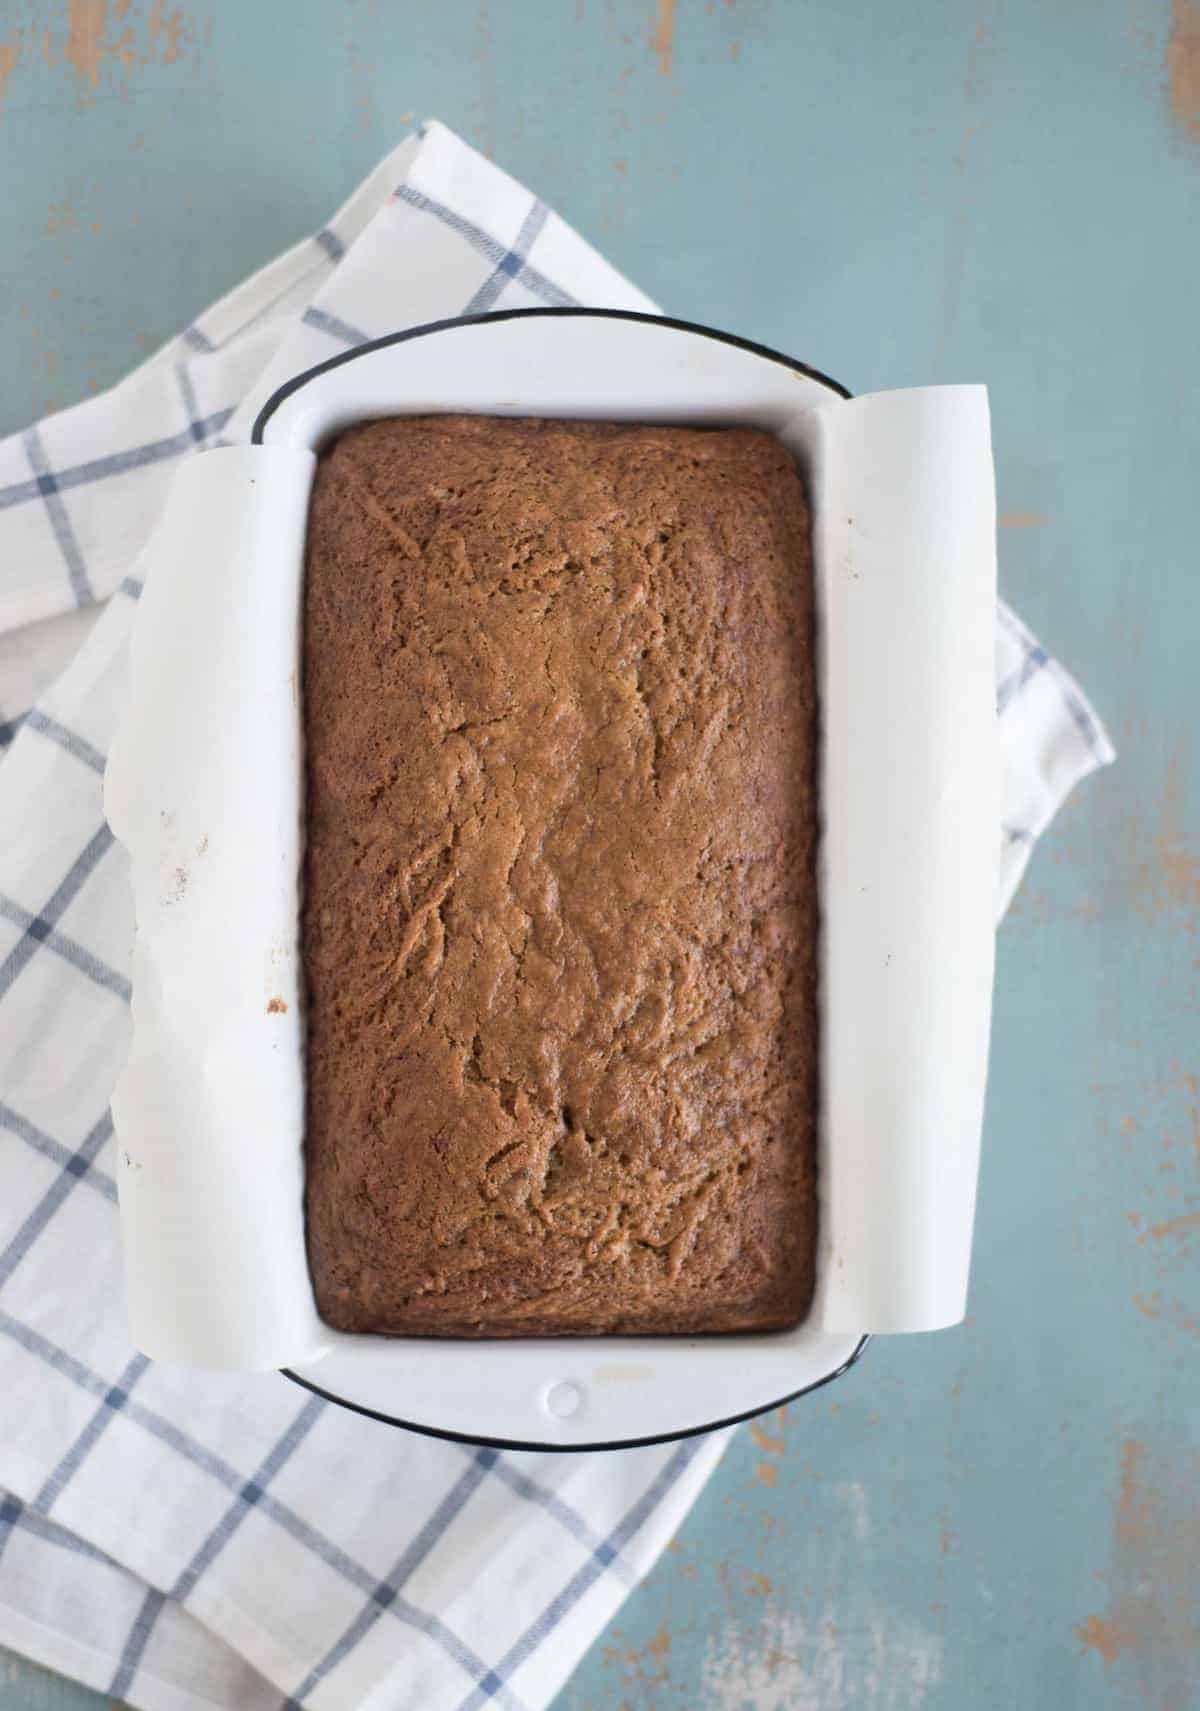 Classic Zucchini bread recipe made with fresh or frozen zucchini, melted butter, and just the right amount of sugar.